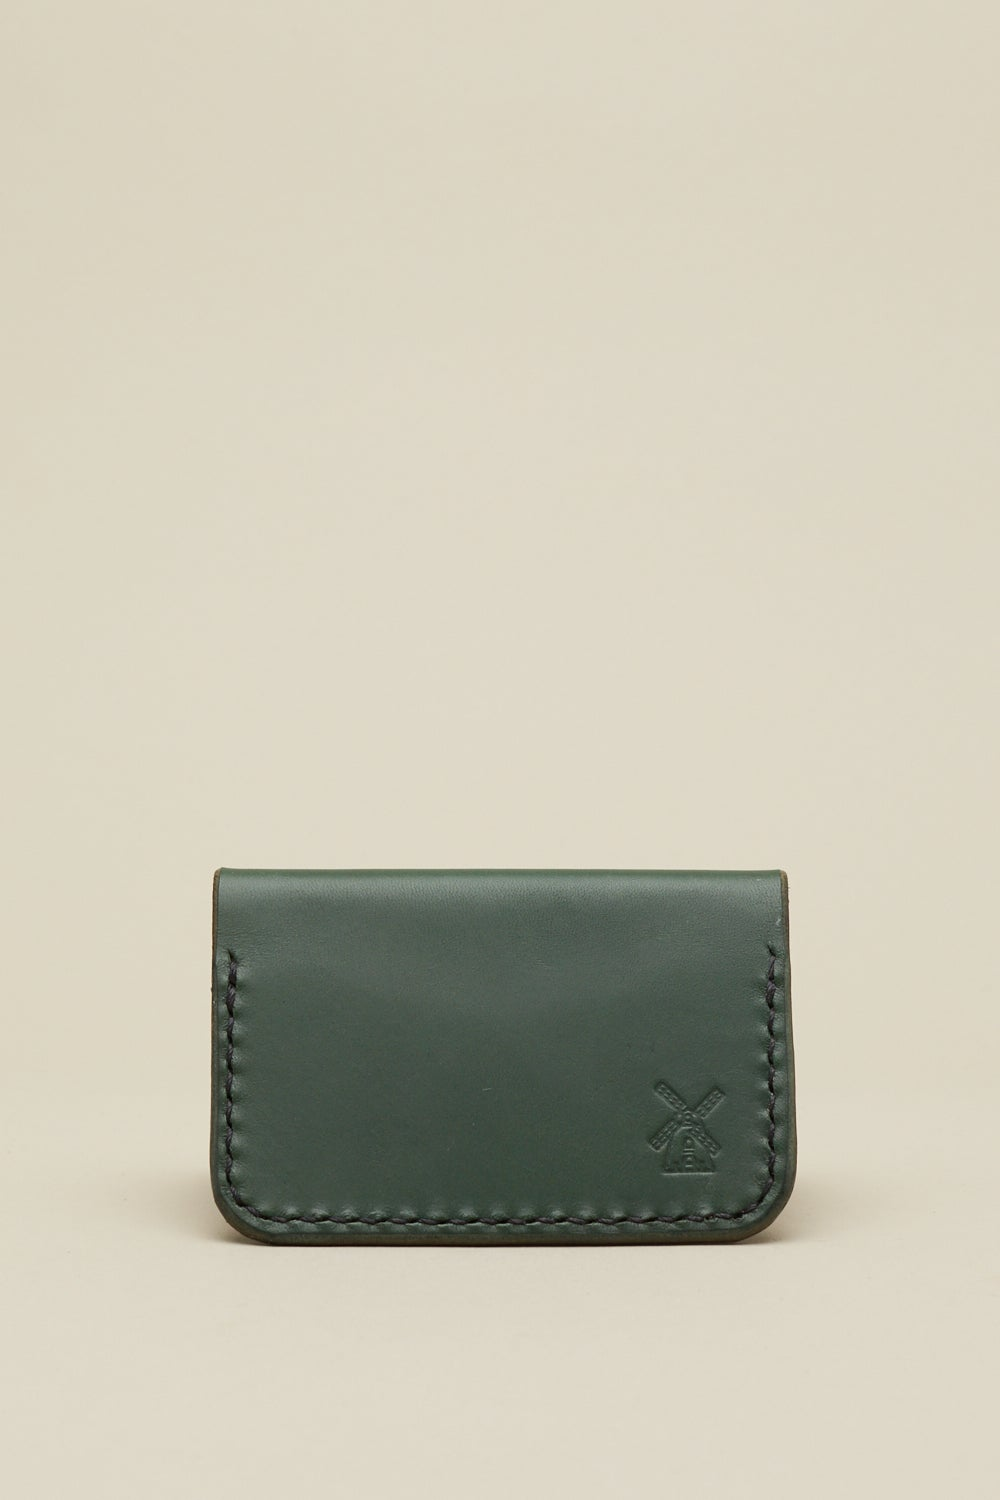 Image of Fold Wallet in Racing Green